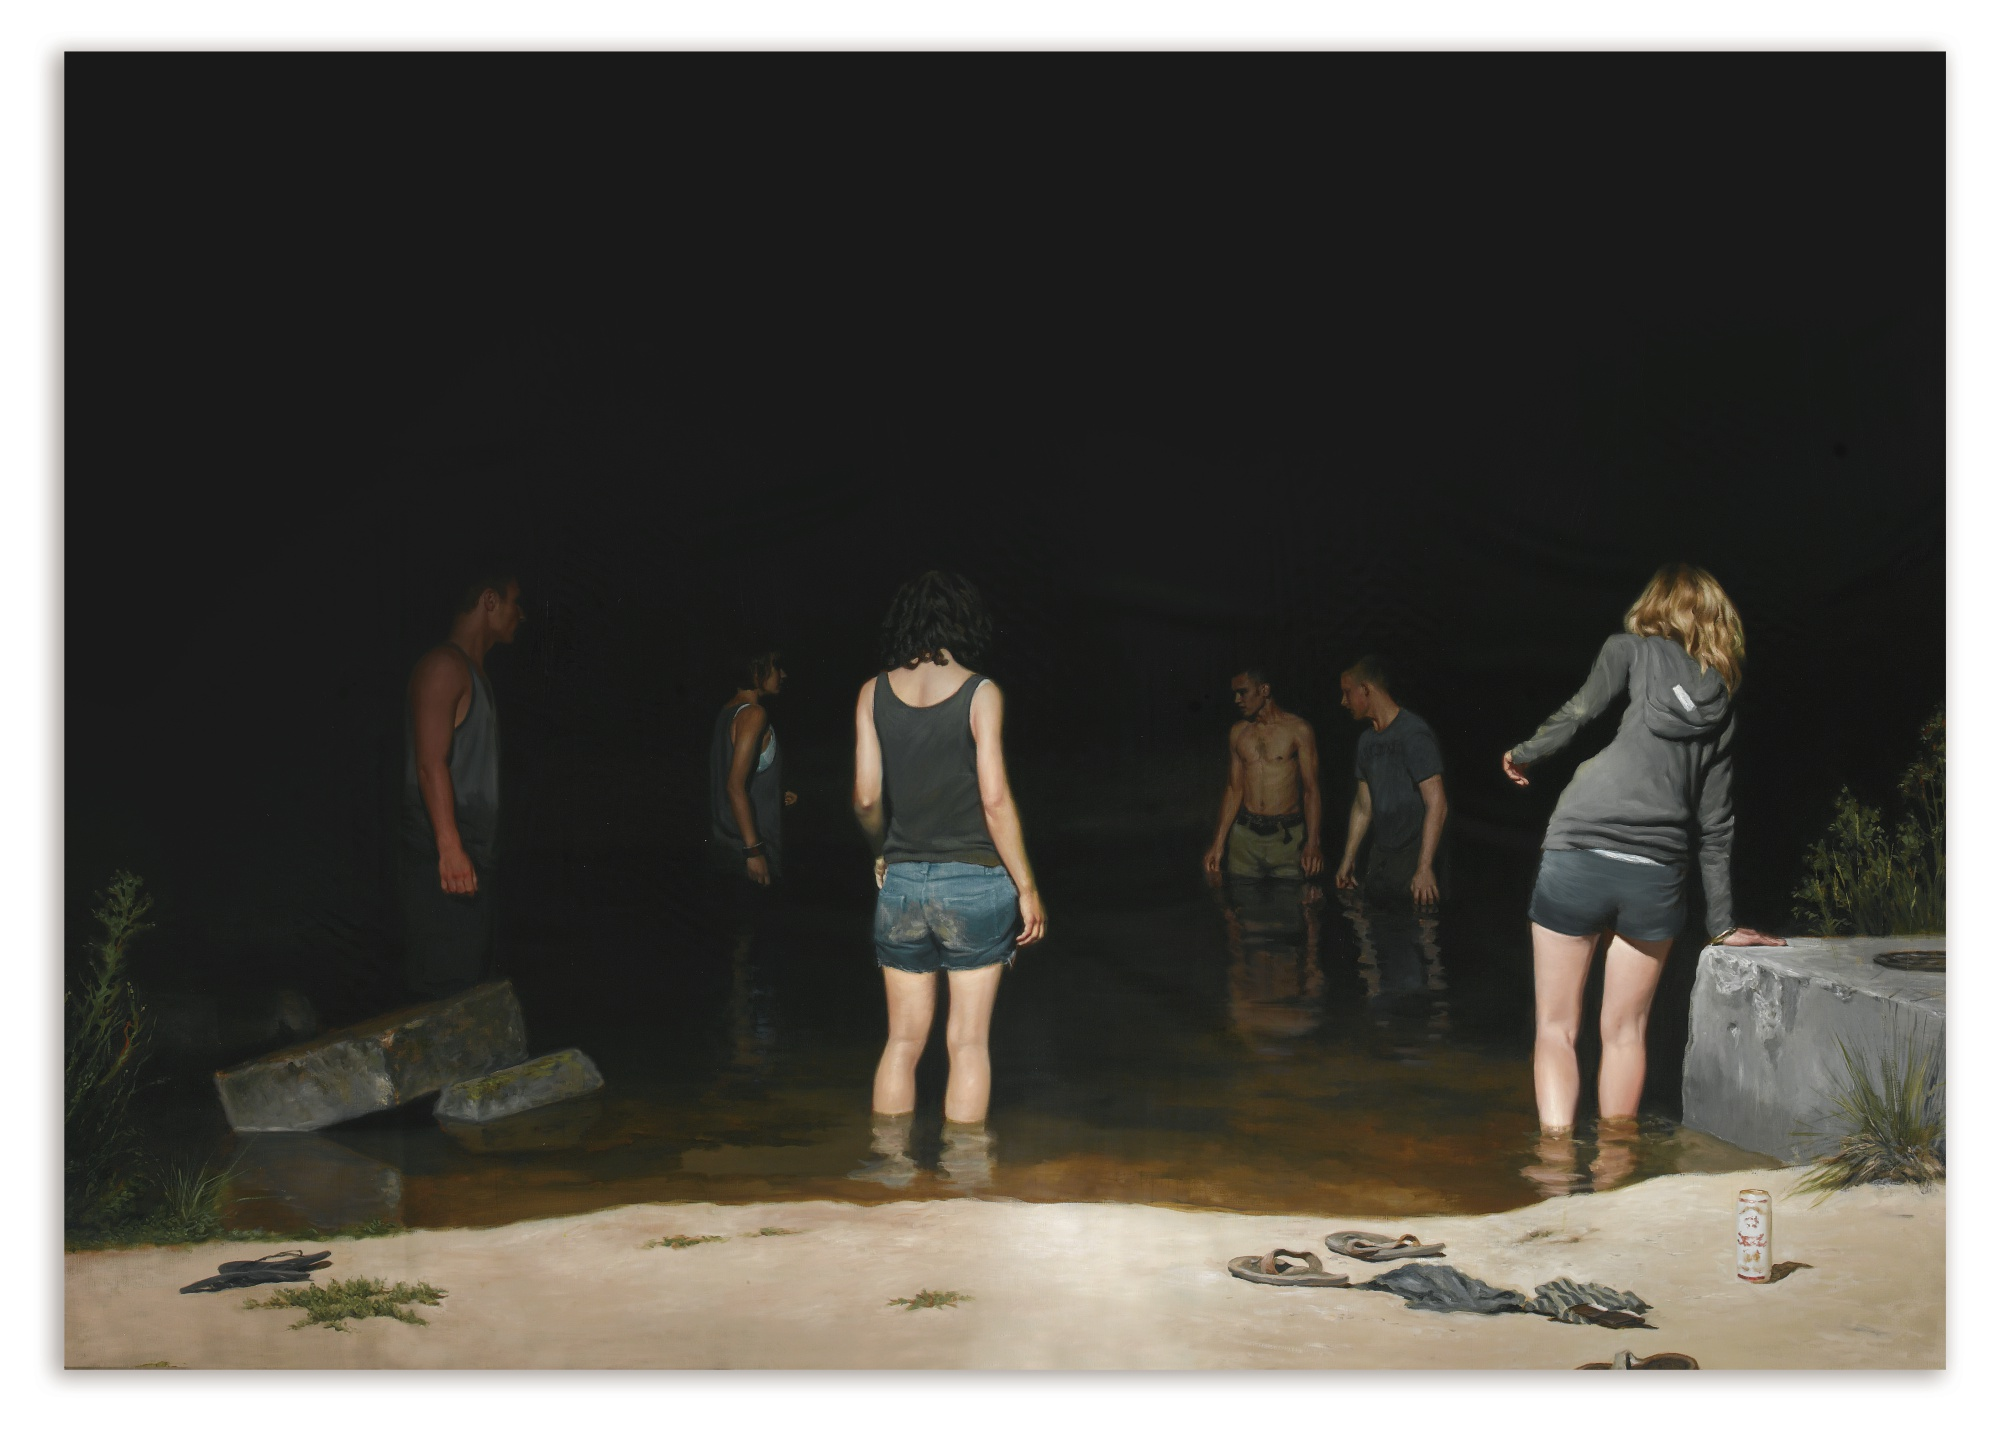 Jonathan Wateridge-Swimming Hole-2011